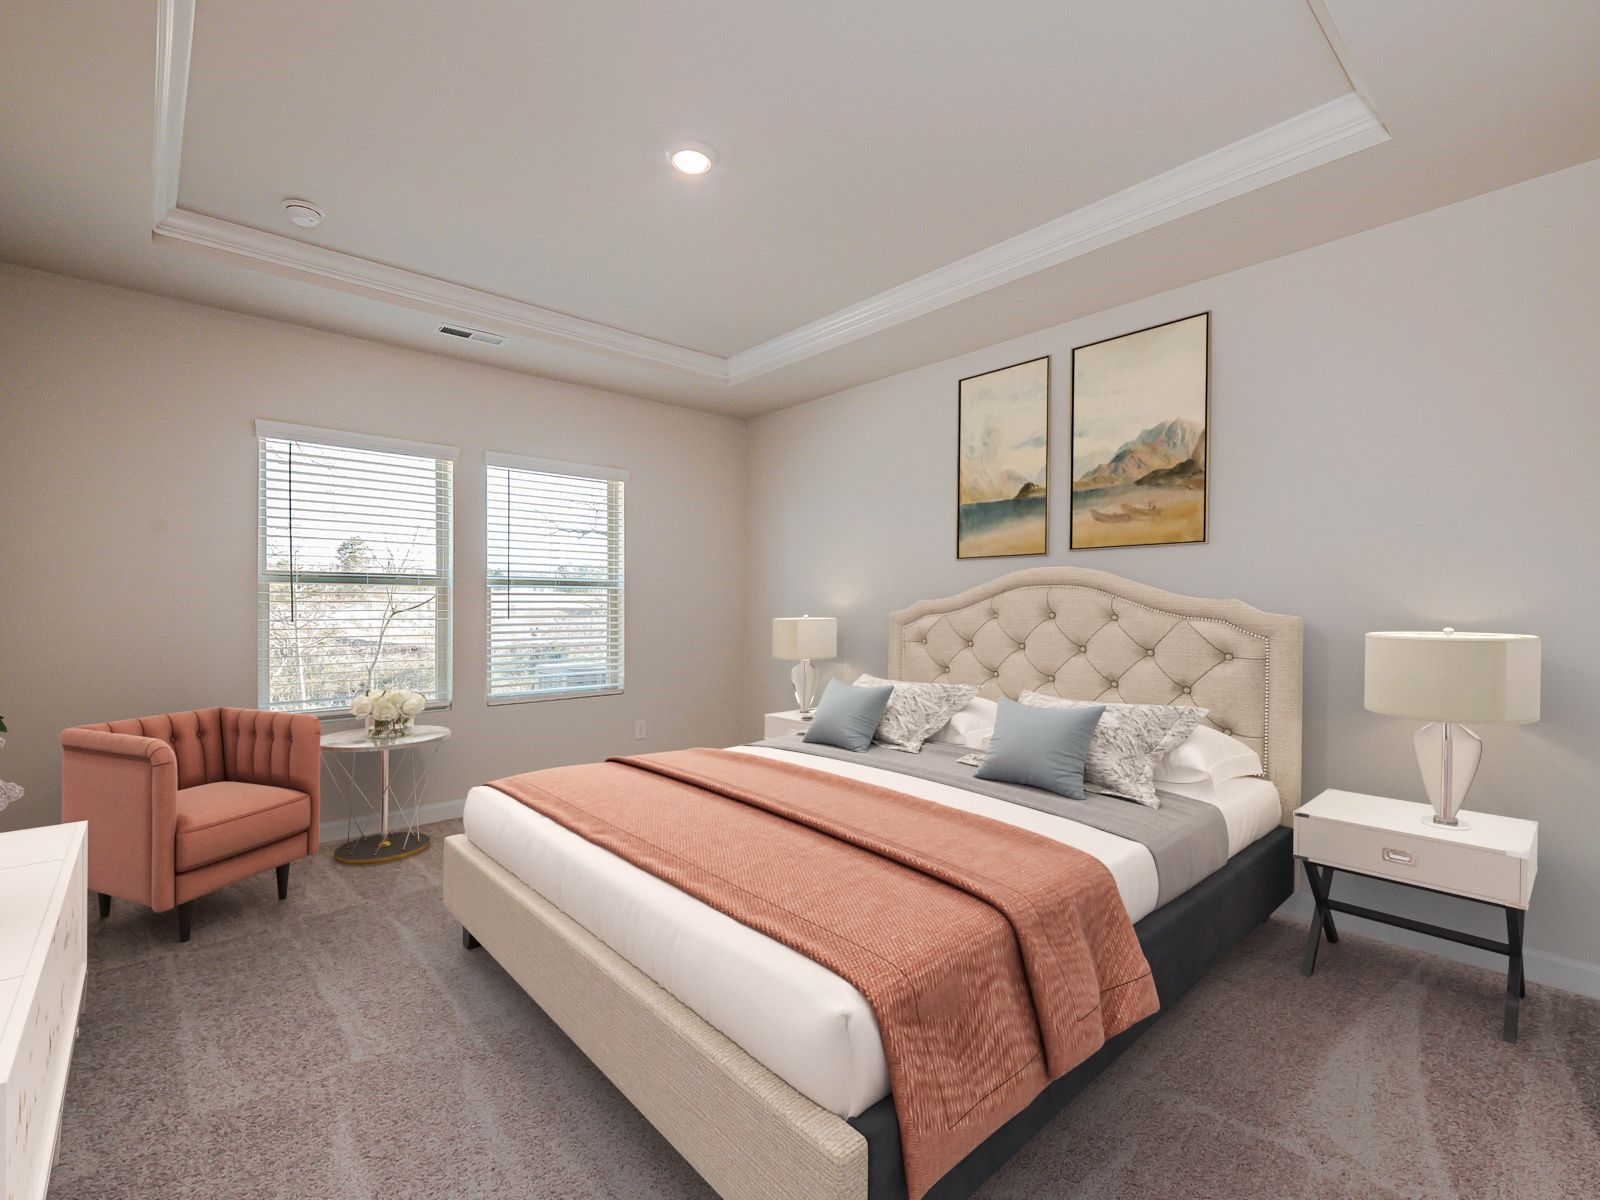 Bedroom featured in the Sherwood By Meritage Homes in Charlotte, NC